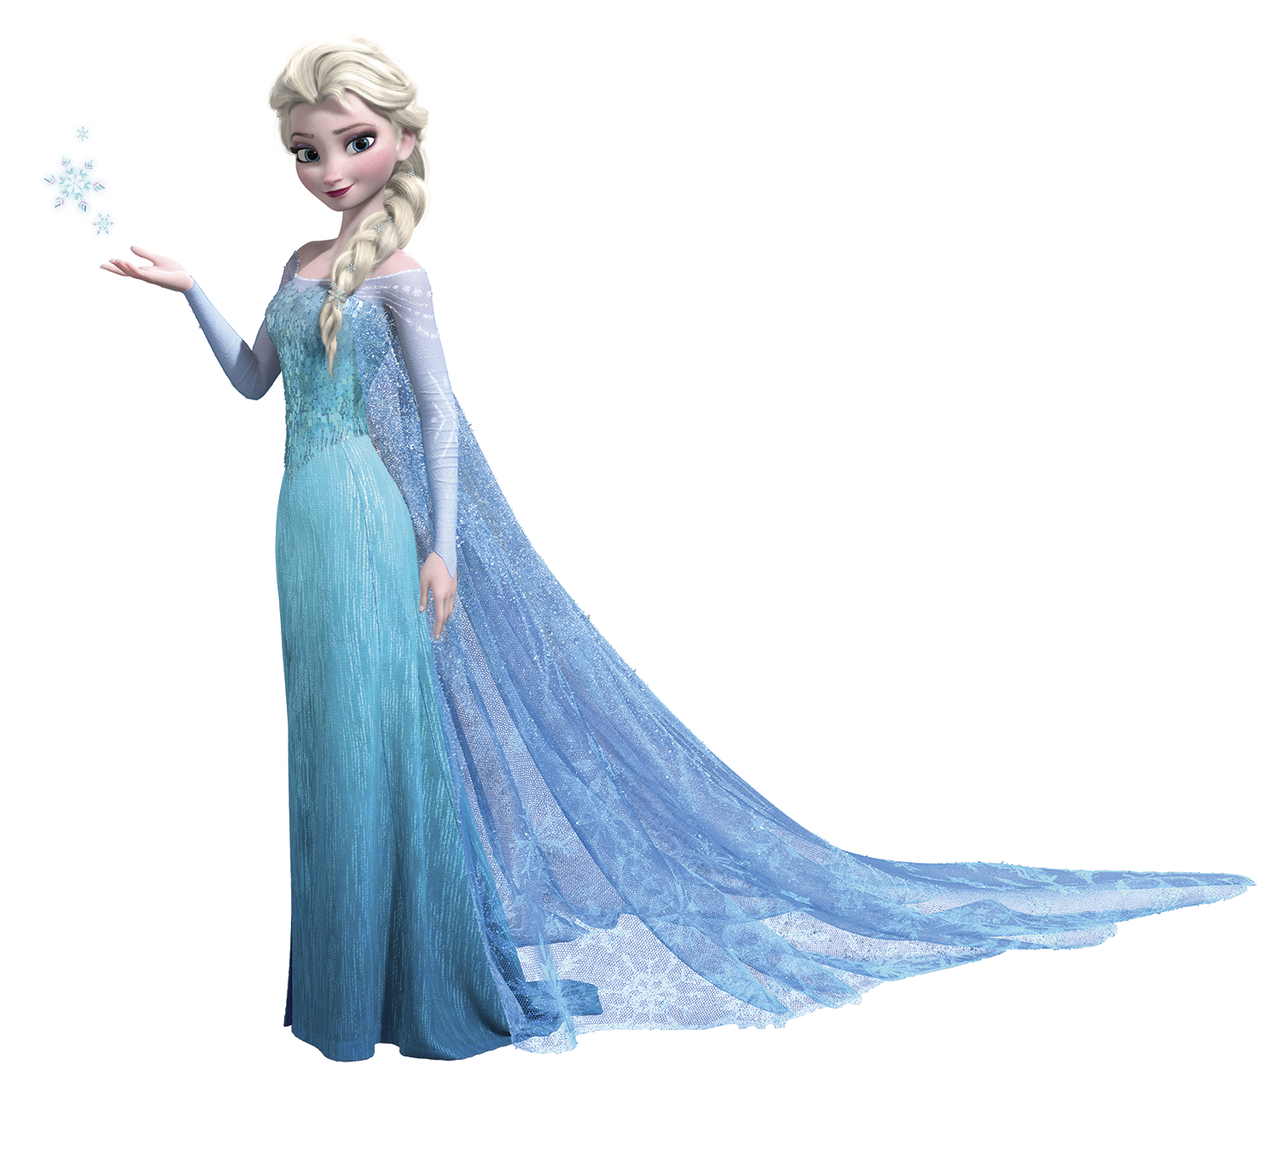 Elsa Frozen Photo 35828419 Fanpop 1280x1153